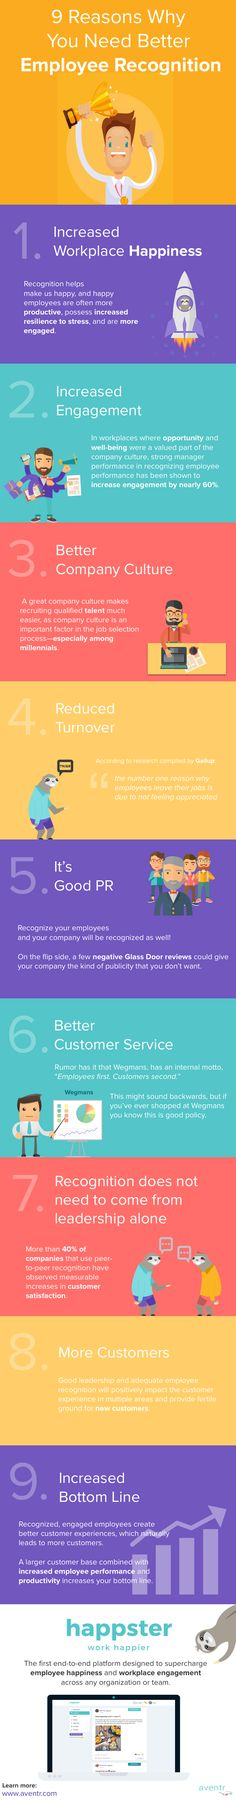 9 Reasons Why You Need Better Employee Recognition Now | Aventr